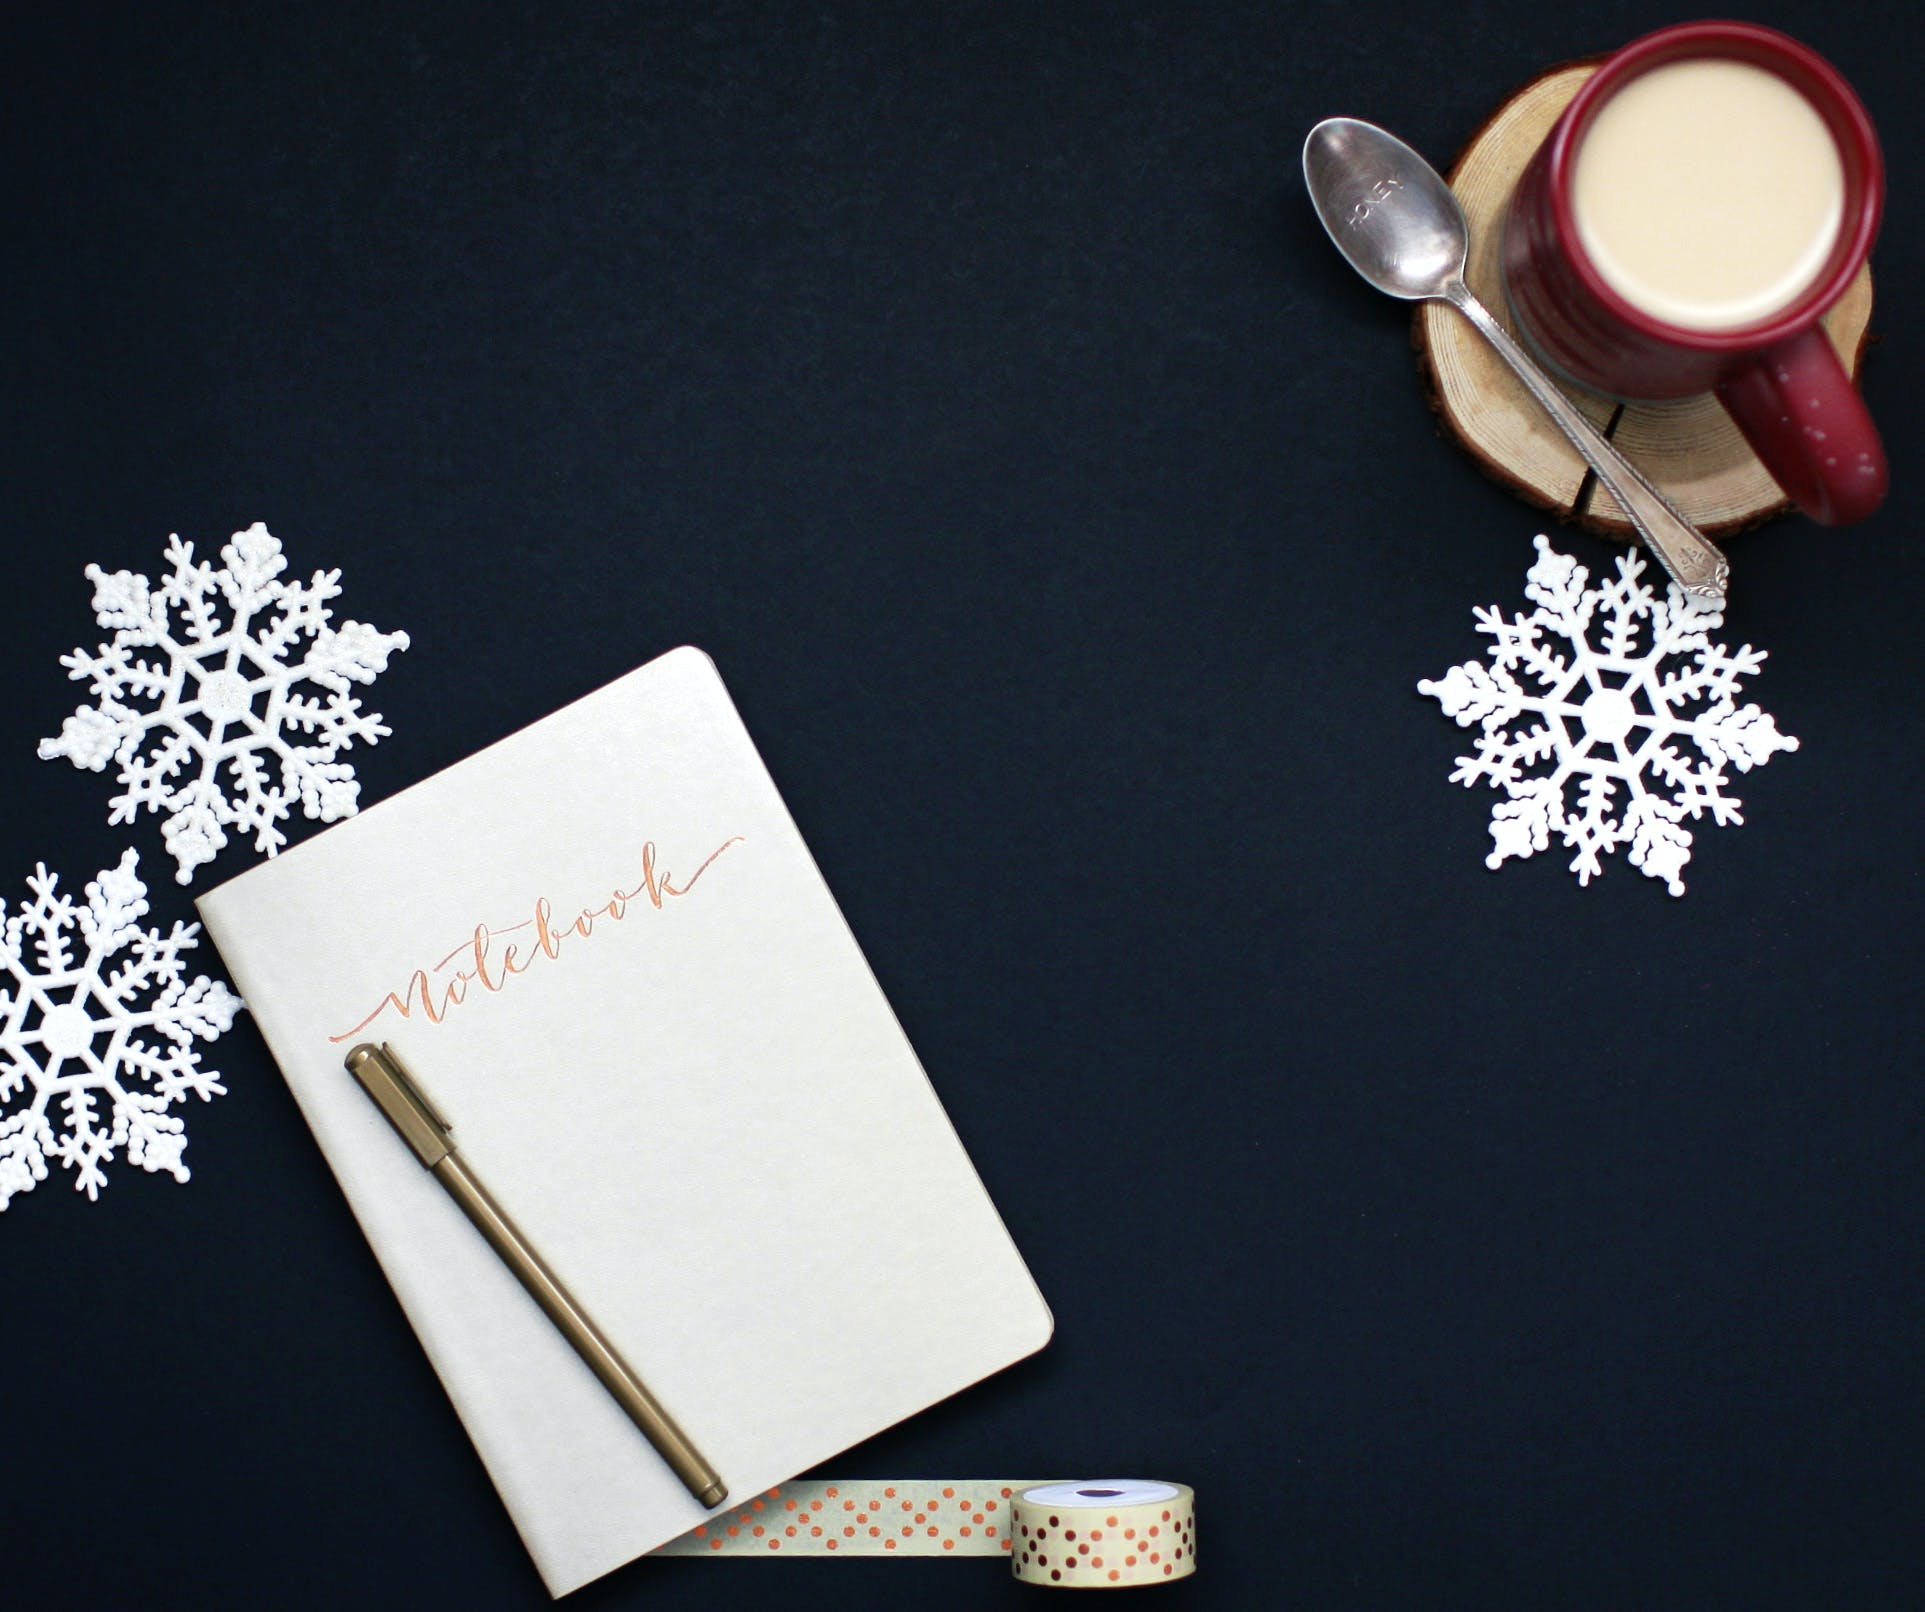 Brown Pen on White Notebook Near Red Coffee Mug and Silver Spoon on Top of Blue Surface